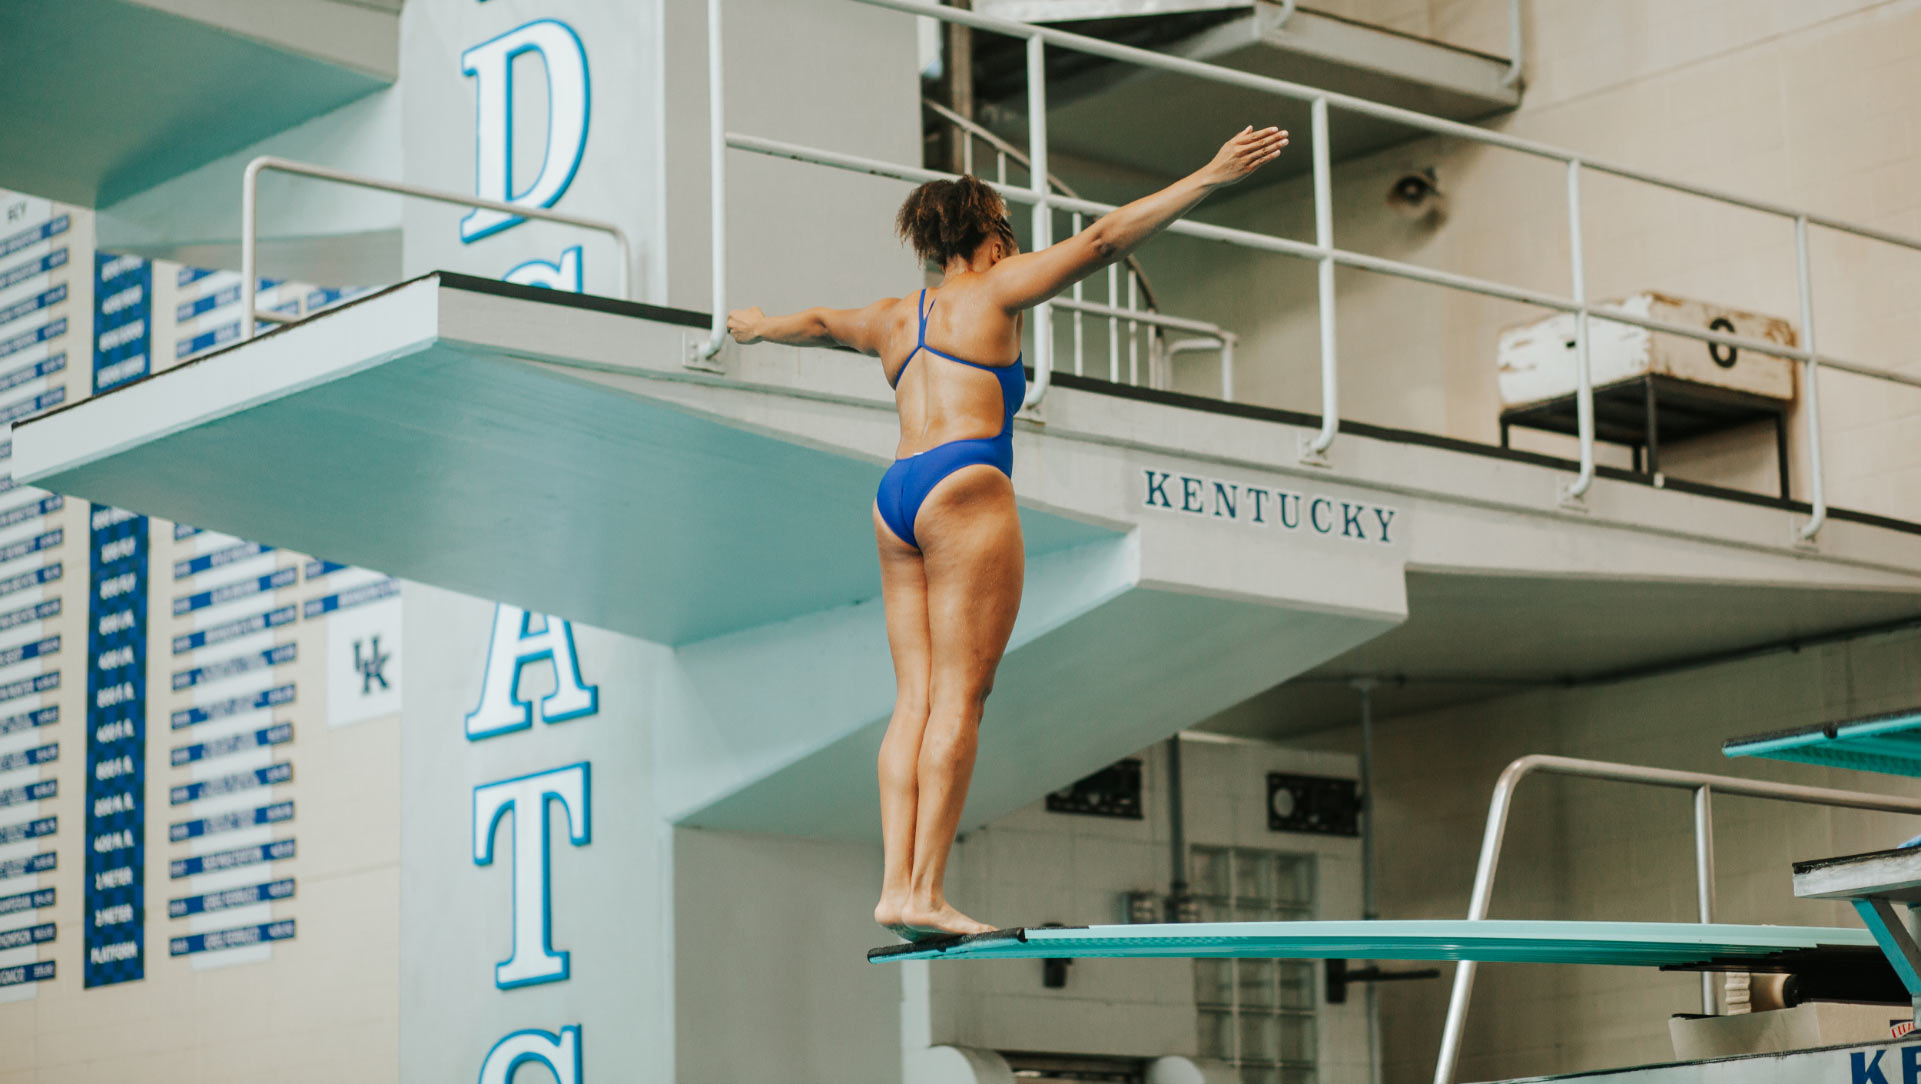 An action shot of Jaida as she stands on the very edge of a high dive, her legs straight and her arms extended fully, preparing to dive into the pool below her.